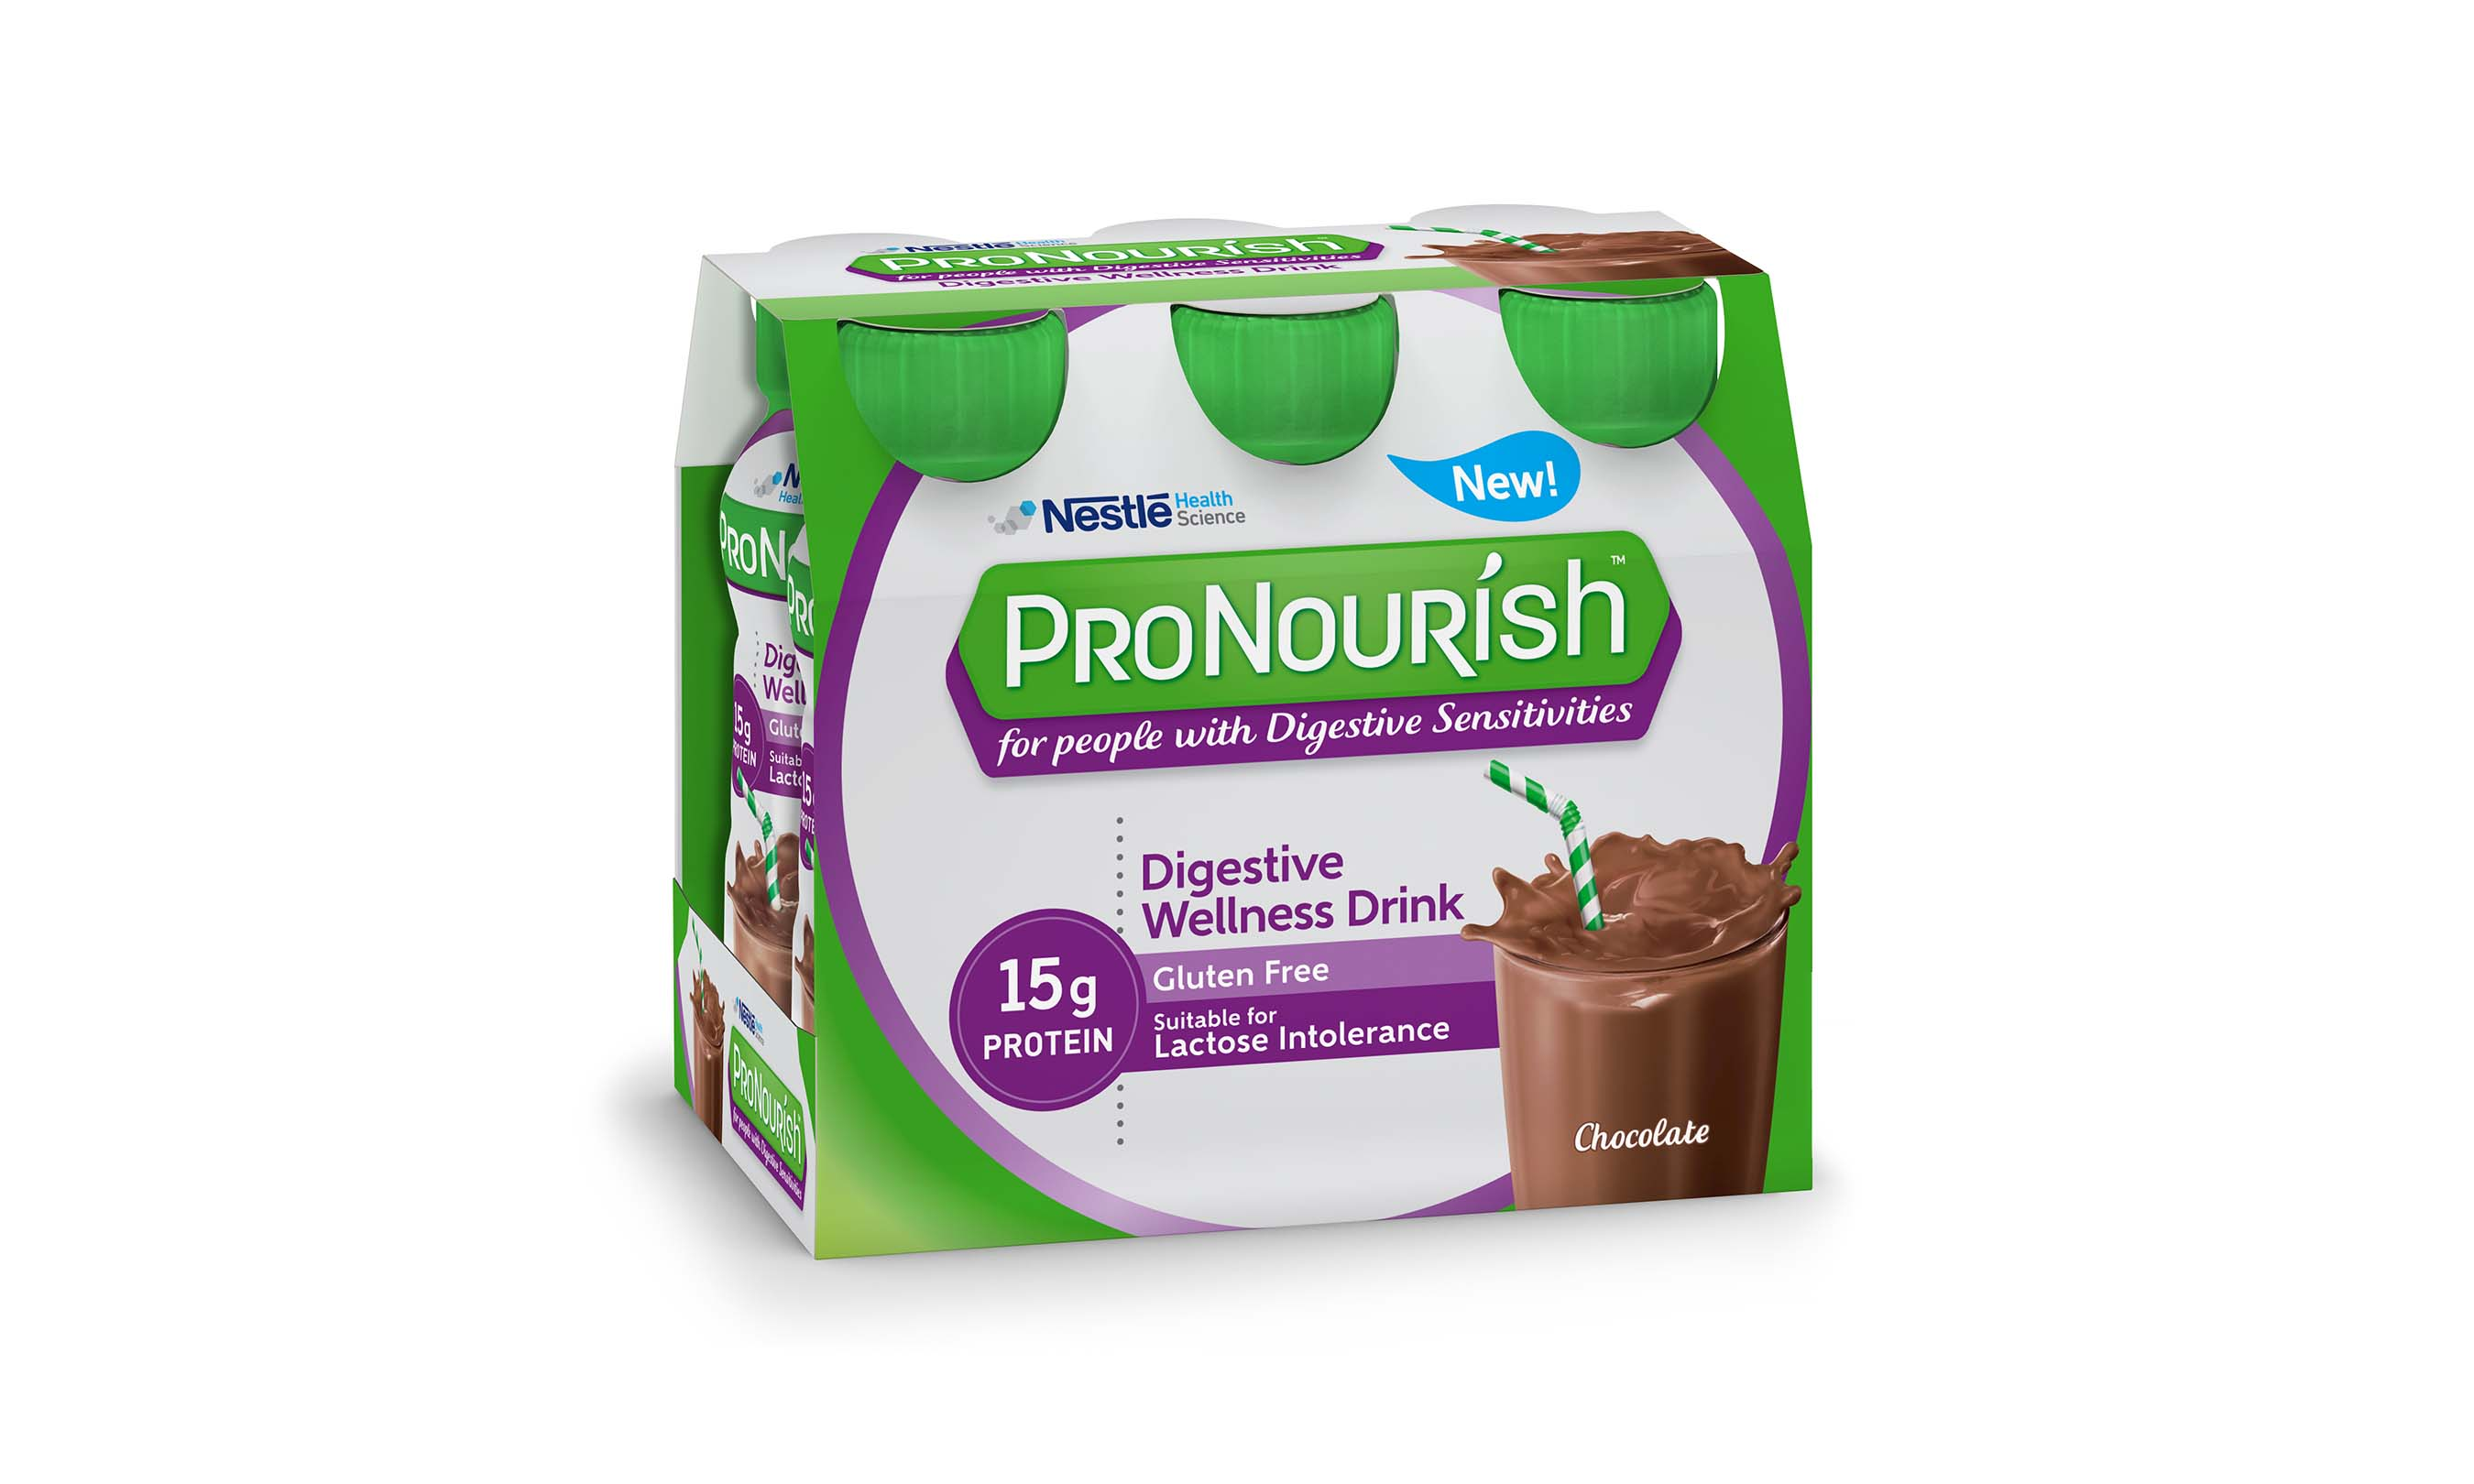 Nestlé Health Science's ProNourish™ Brand Launches Gluten-free and Low-FODMAP Recipe Videos for People with Digestive Sensitivities